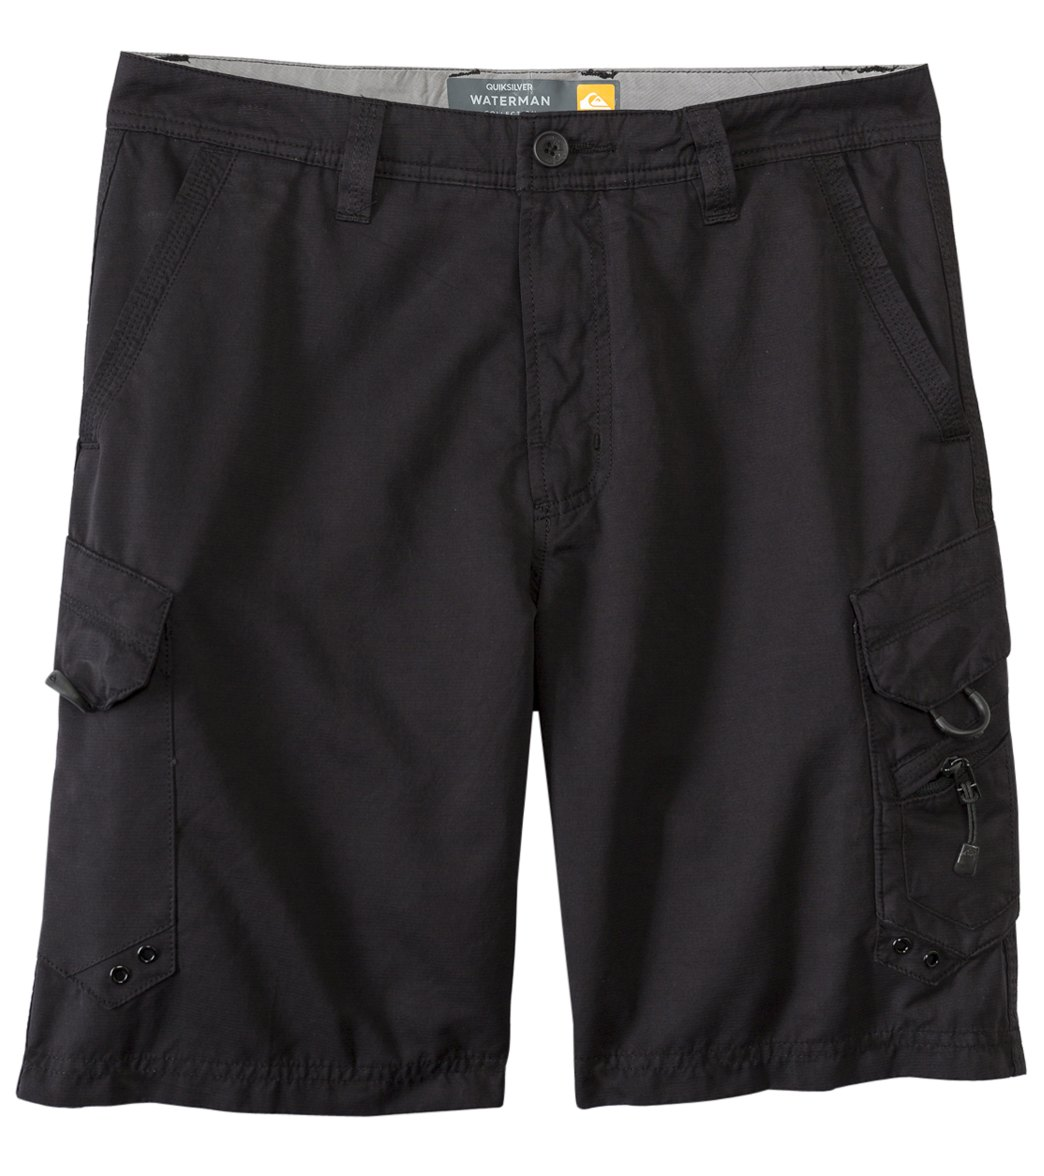 8ae8744561 Quiksilver Waterman's Maldive 8 Cargo Walkshort at SwimOutlet.com - Free  Shipping